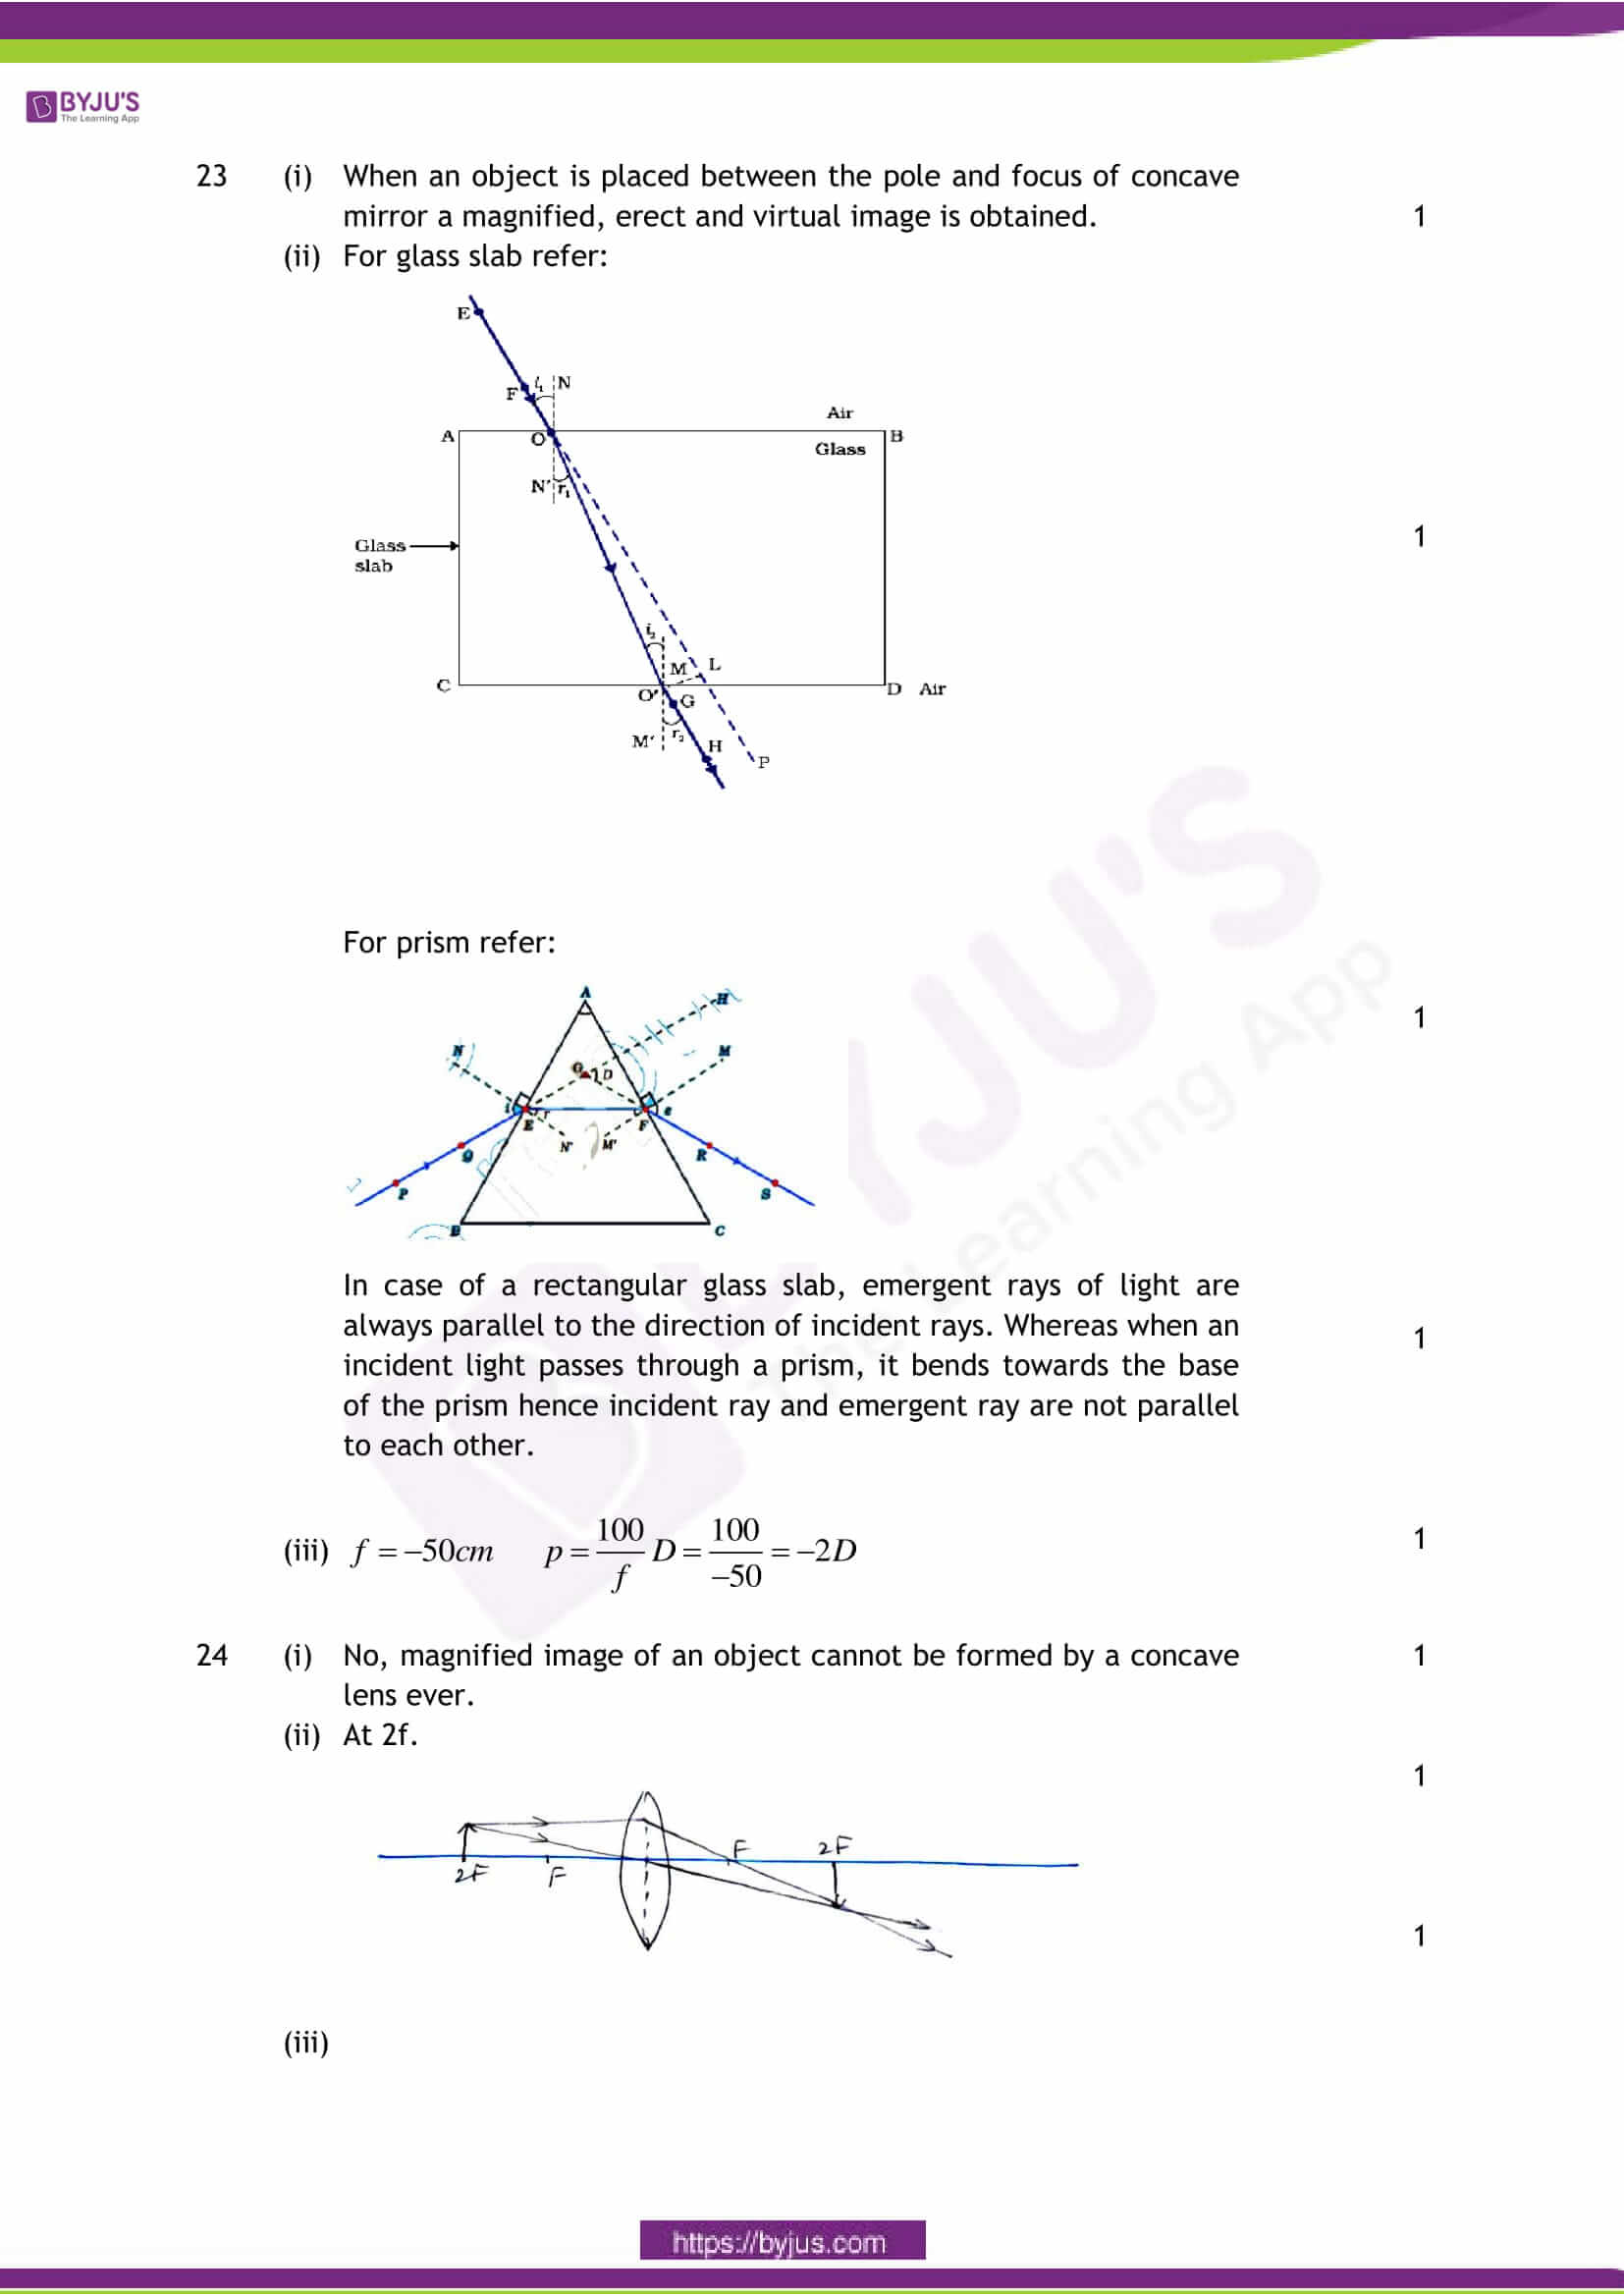 cbse class 10 science sample paper solution sa 2 set 1